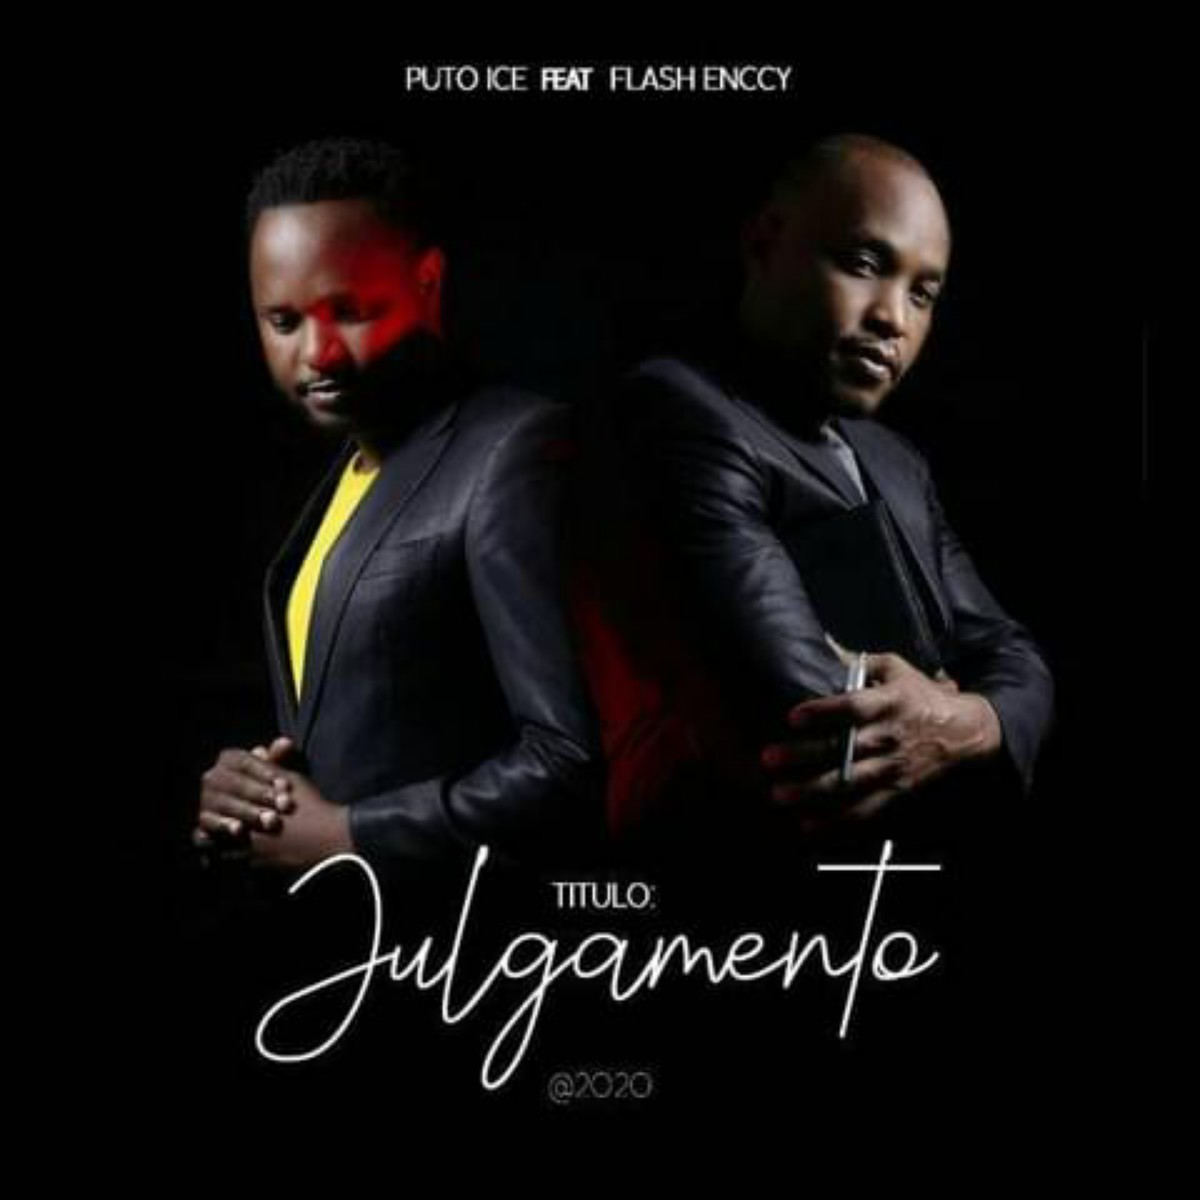 Puto Ice - Julgamento (feat. Flash Enccy)